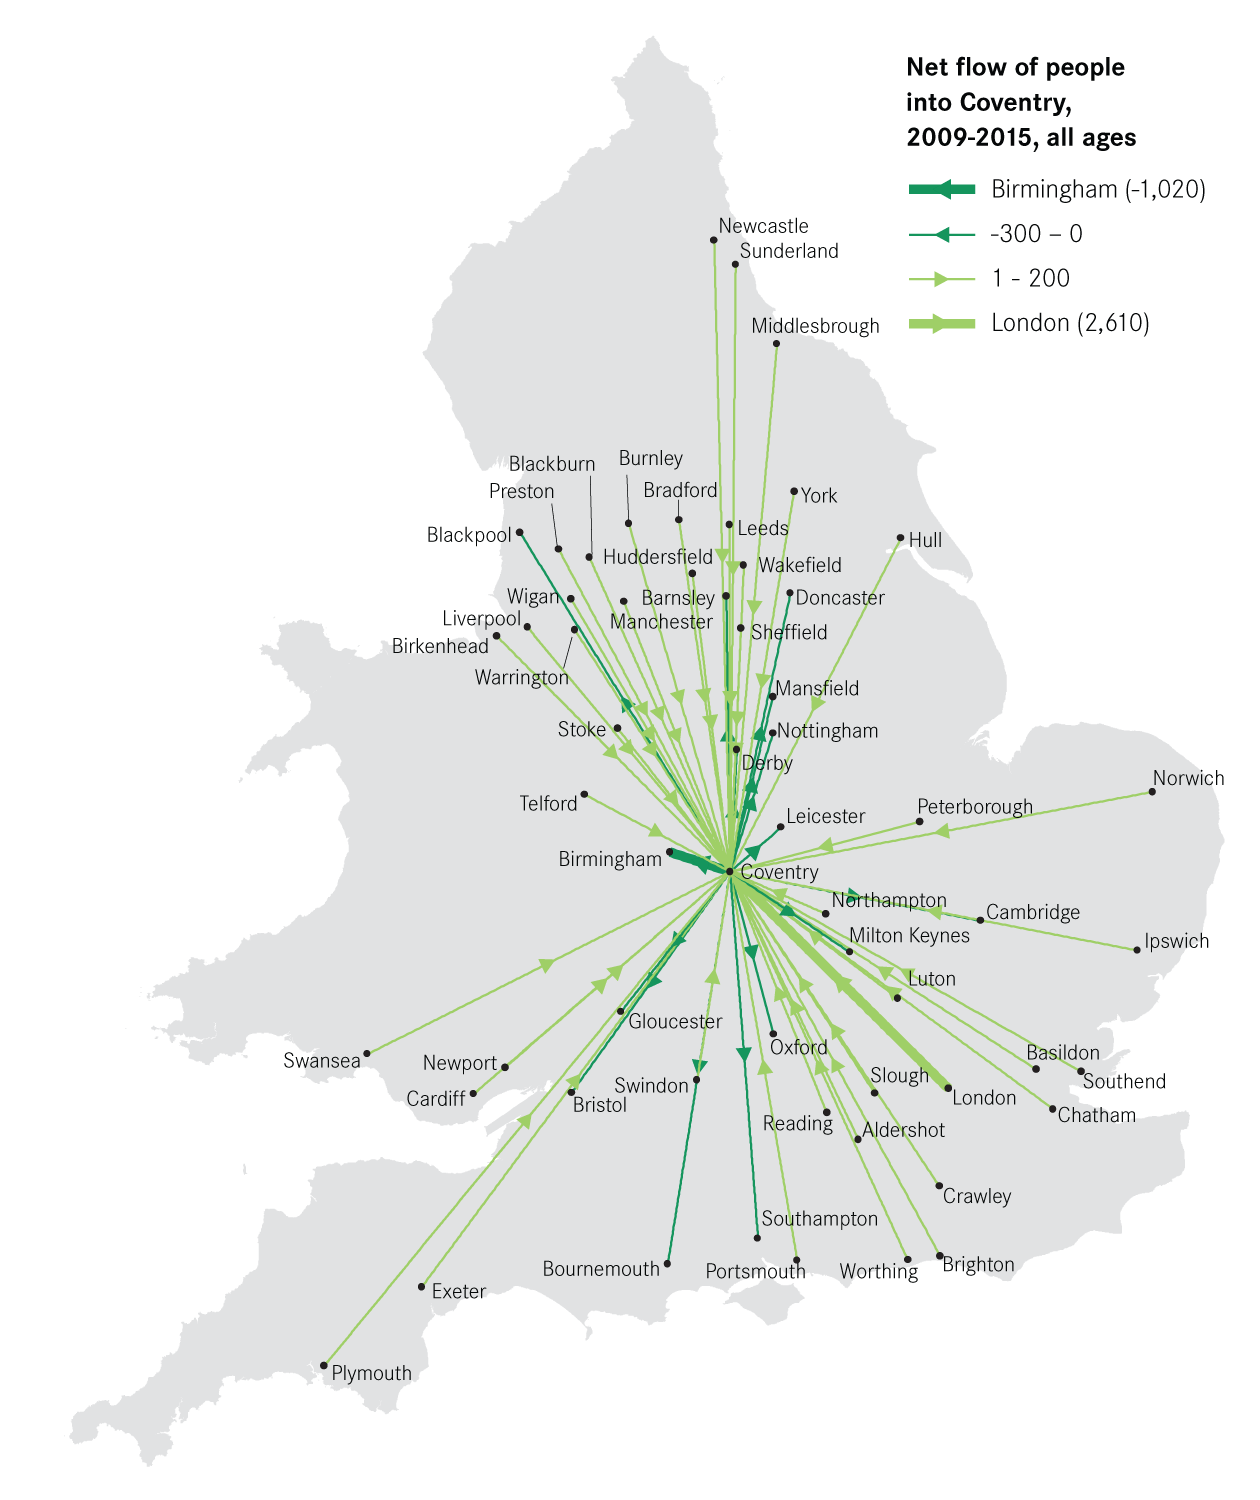 Figure-2-Net-flow-migration-to-Coventry,-2009-2015,-all-ages